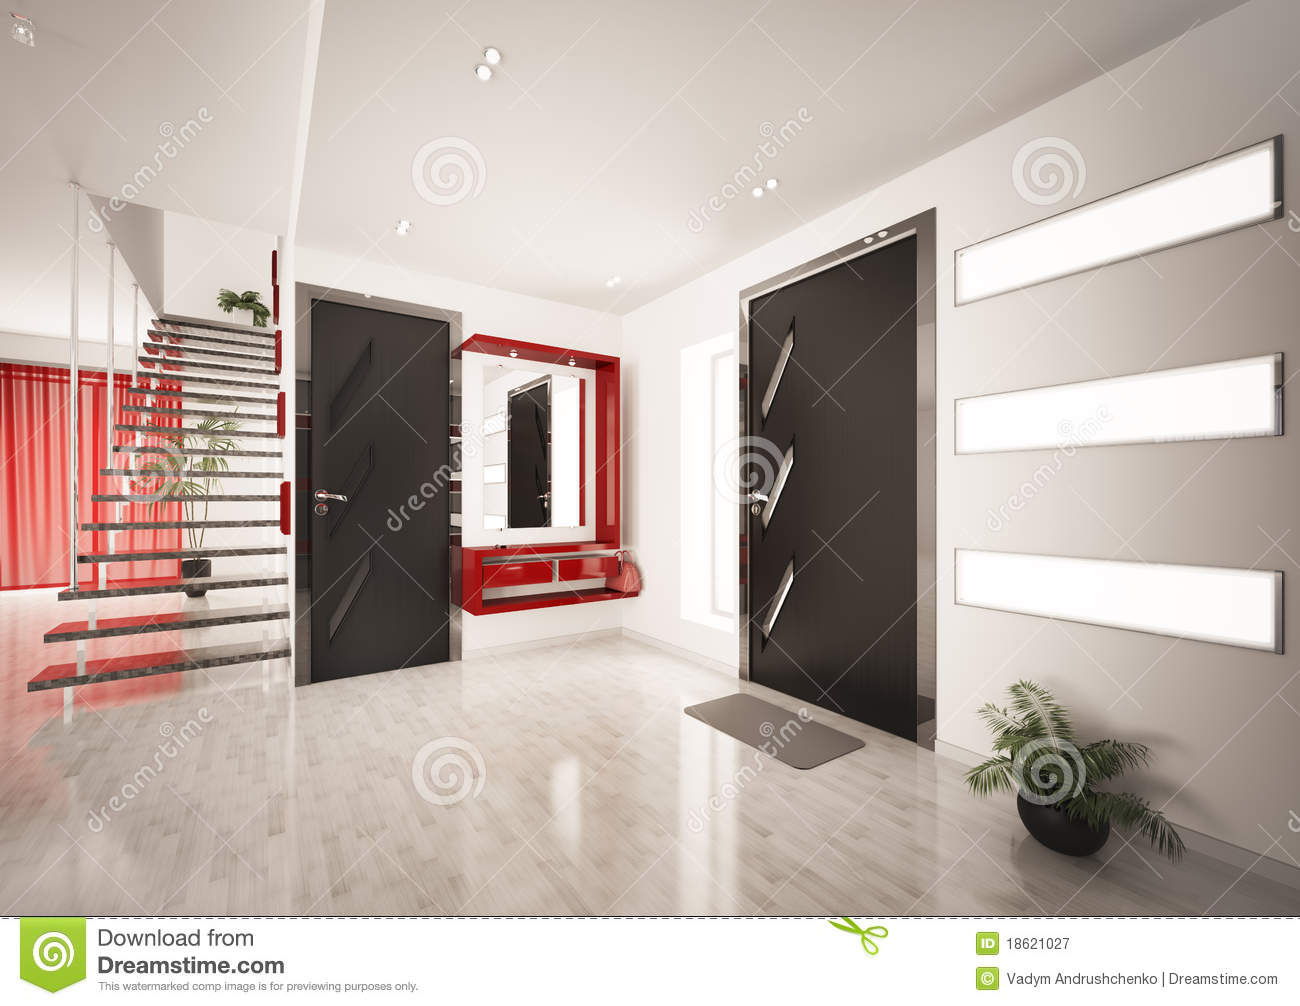 L 39 int rieur moderne du hall avec l 39 escalier 3d rendent illustration stock image 18621027 for Photo entree maison moderne